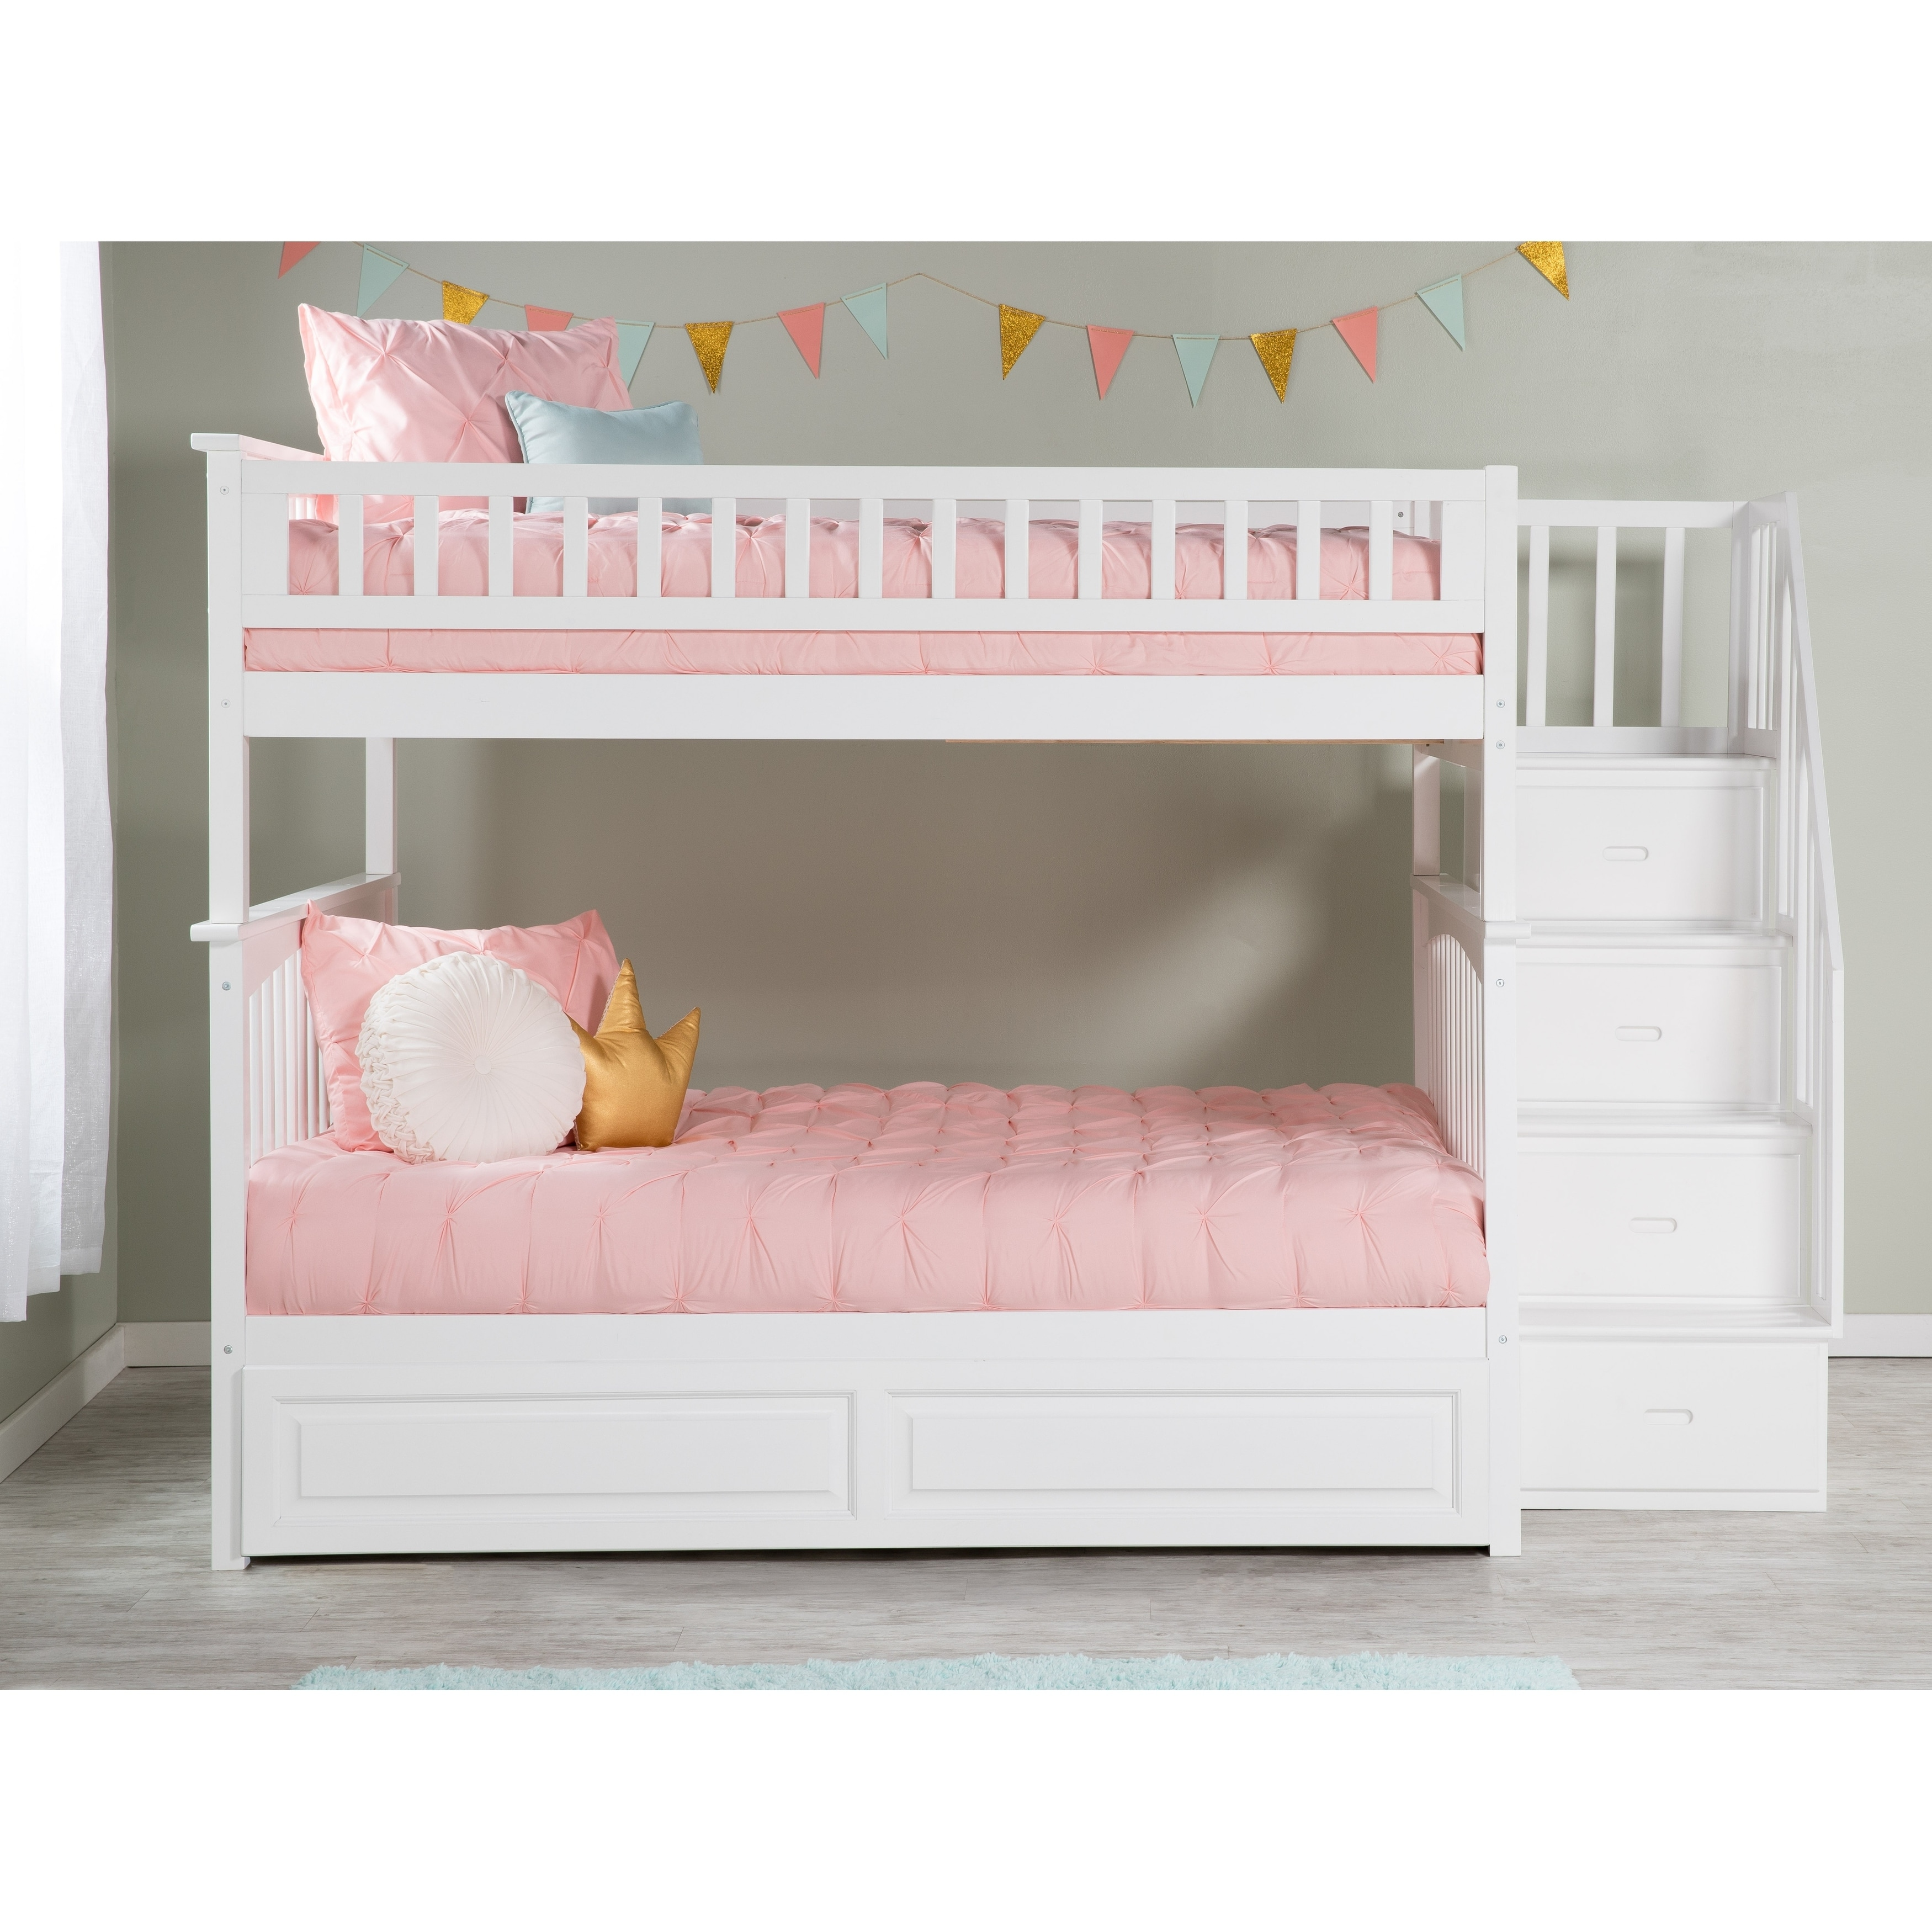 Columbia Staircase Bunk Bed Full Over Full With Twin Size Raised Panel Trundle Bed In White Overstock 13049018